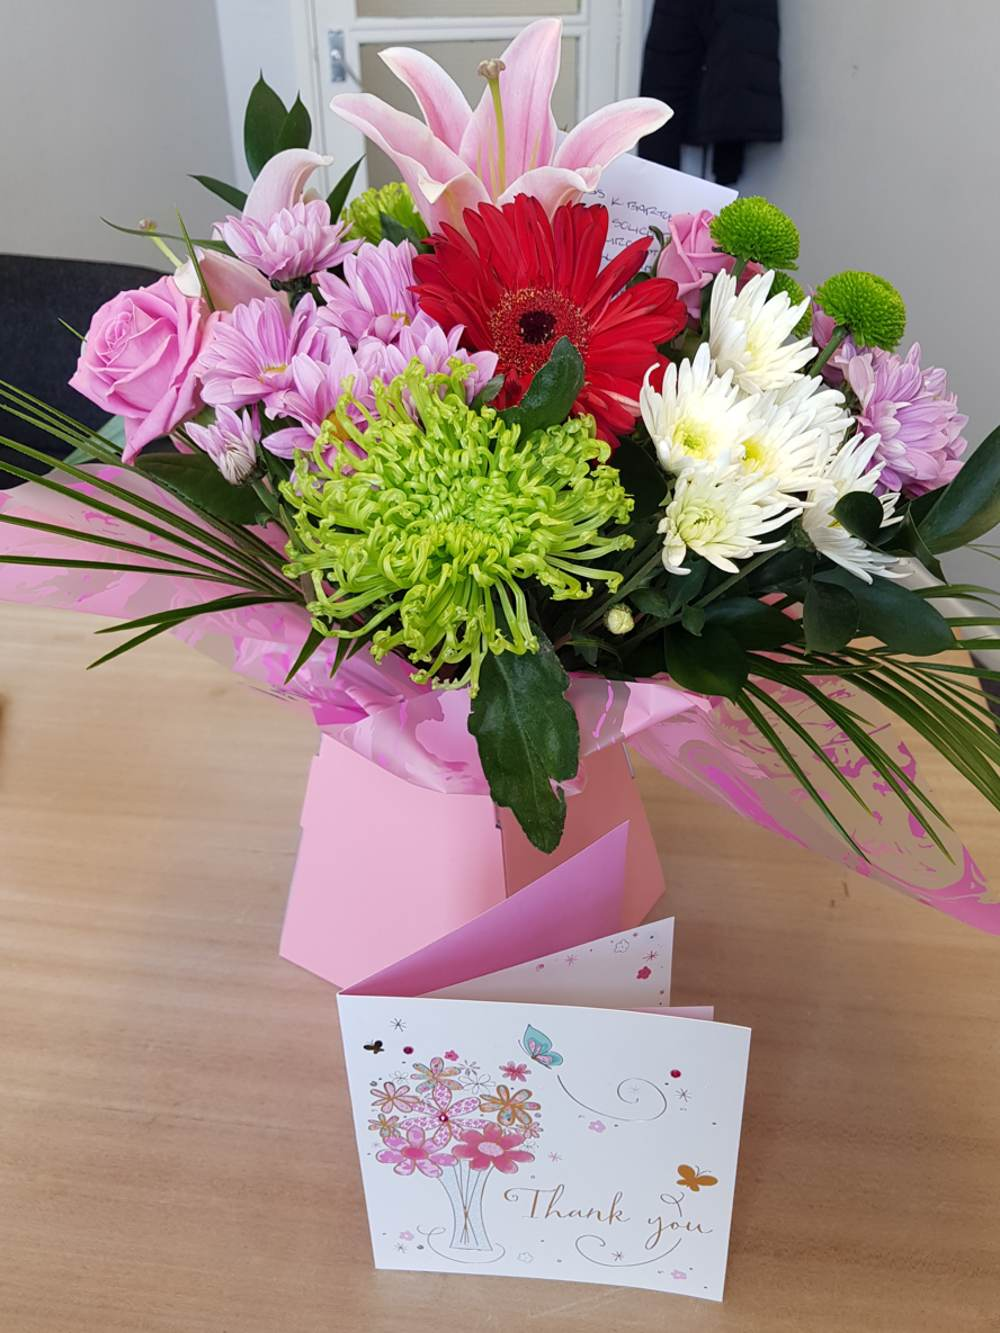 Flowers from happy client